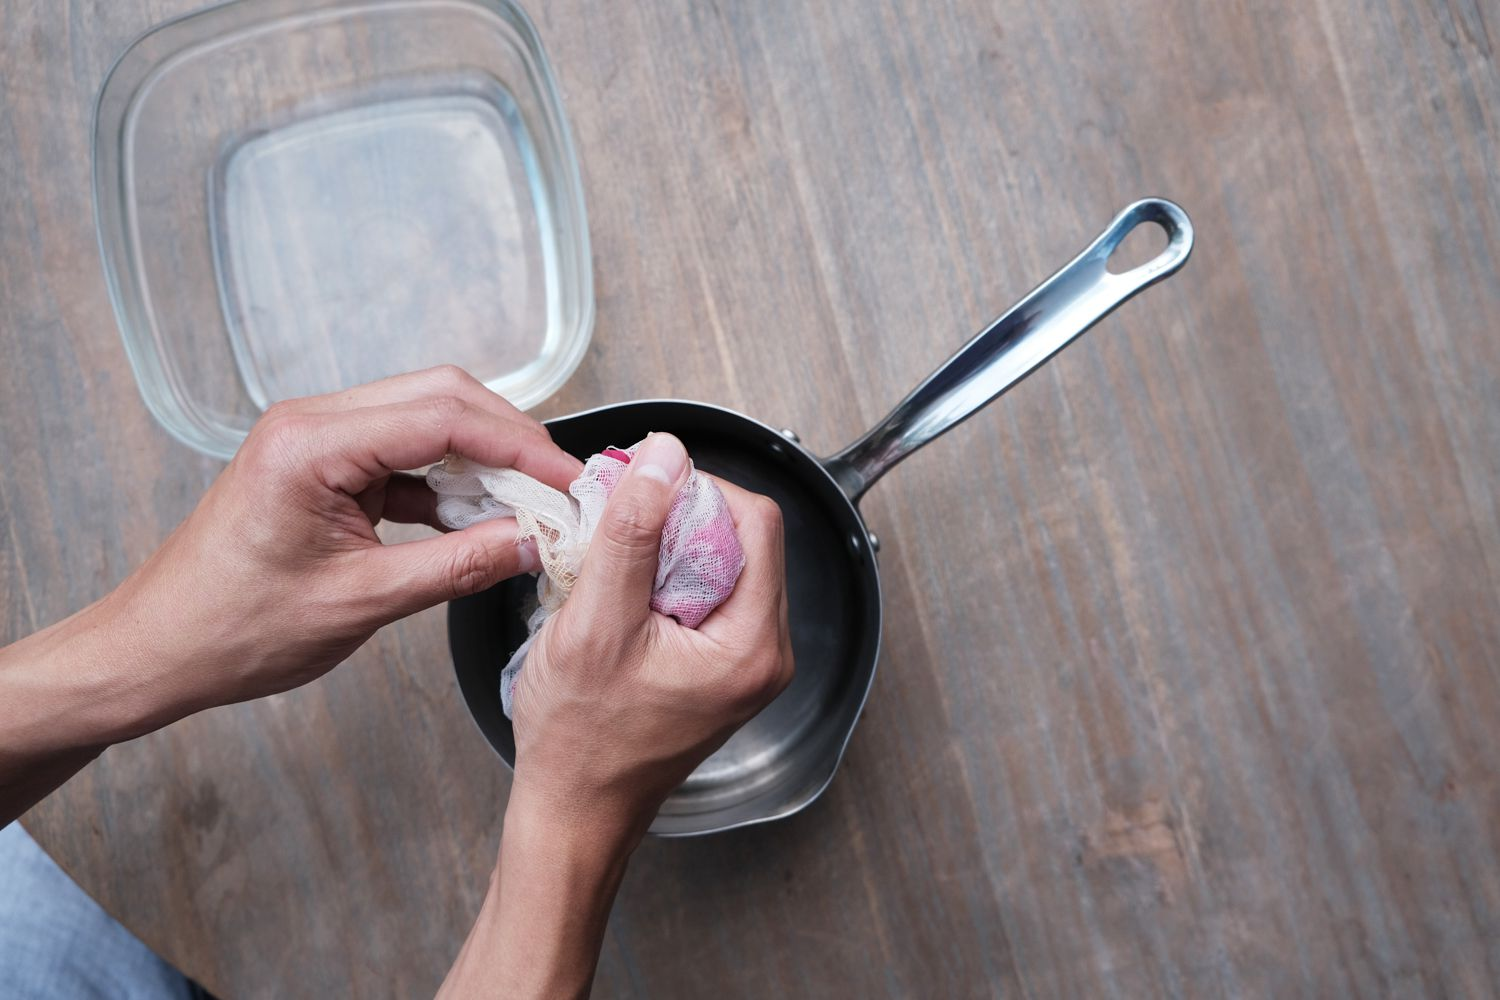 hands squeeze cheesecloth filled with wet rose petals to get out diy rose water